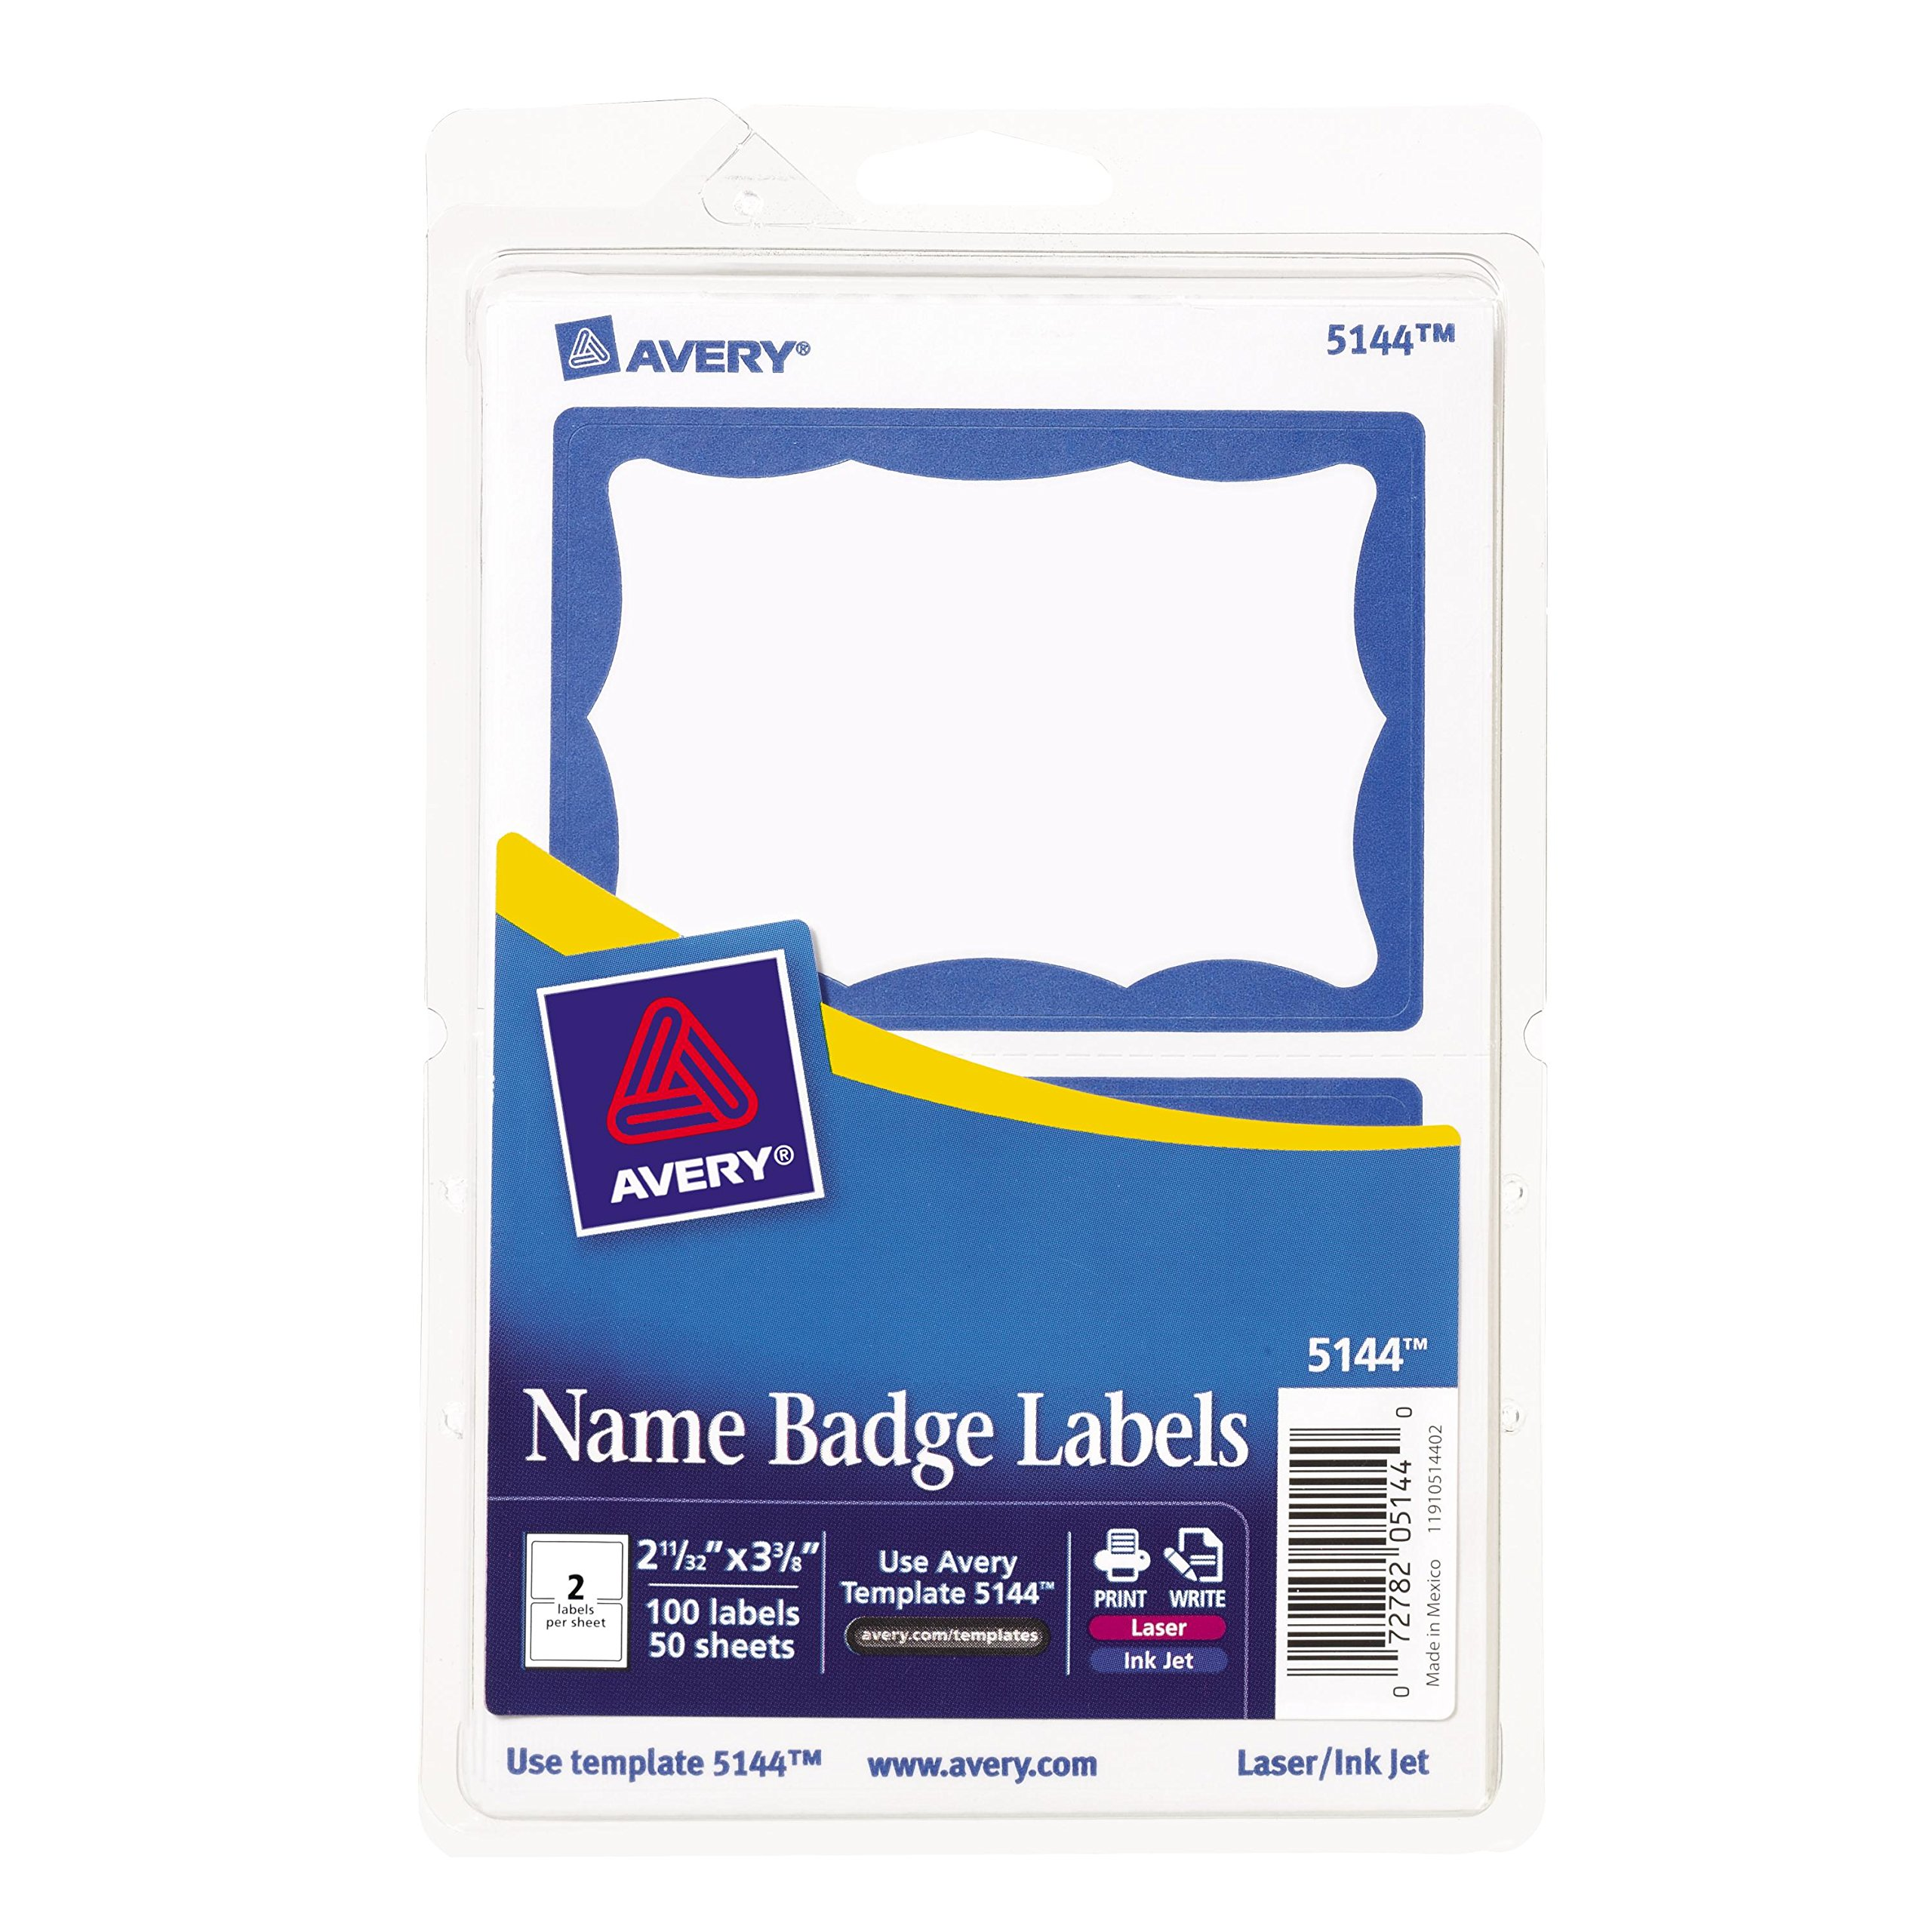 Avery Print or Write Name Badge Labels with Blue Border , 2-11/32'' x 3-3/8'', 100 Labels per Pack, Case Pack of 18 (5144)